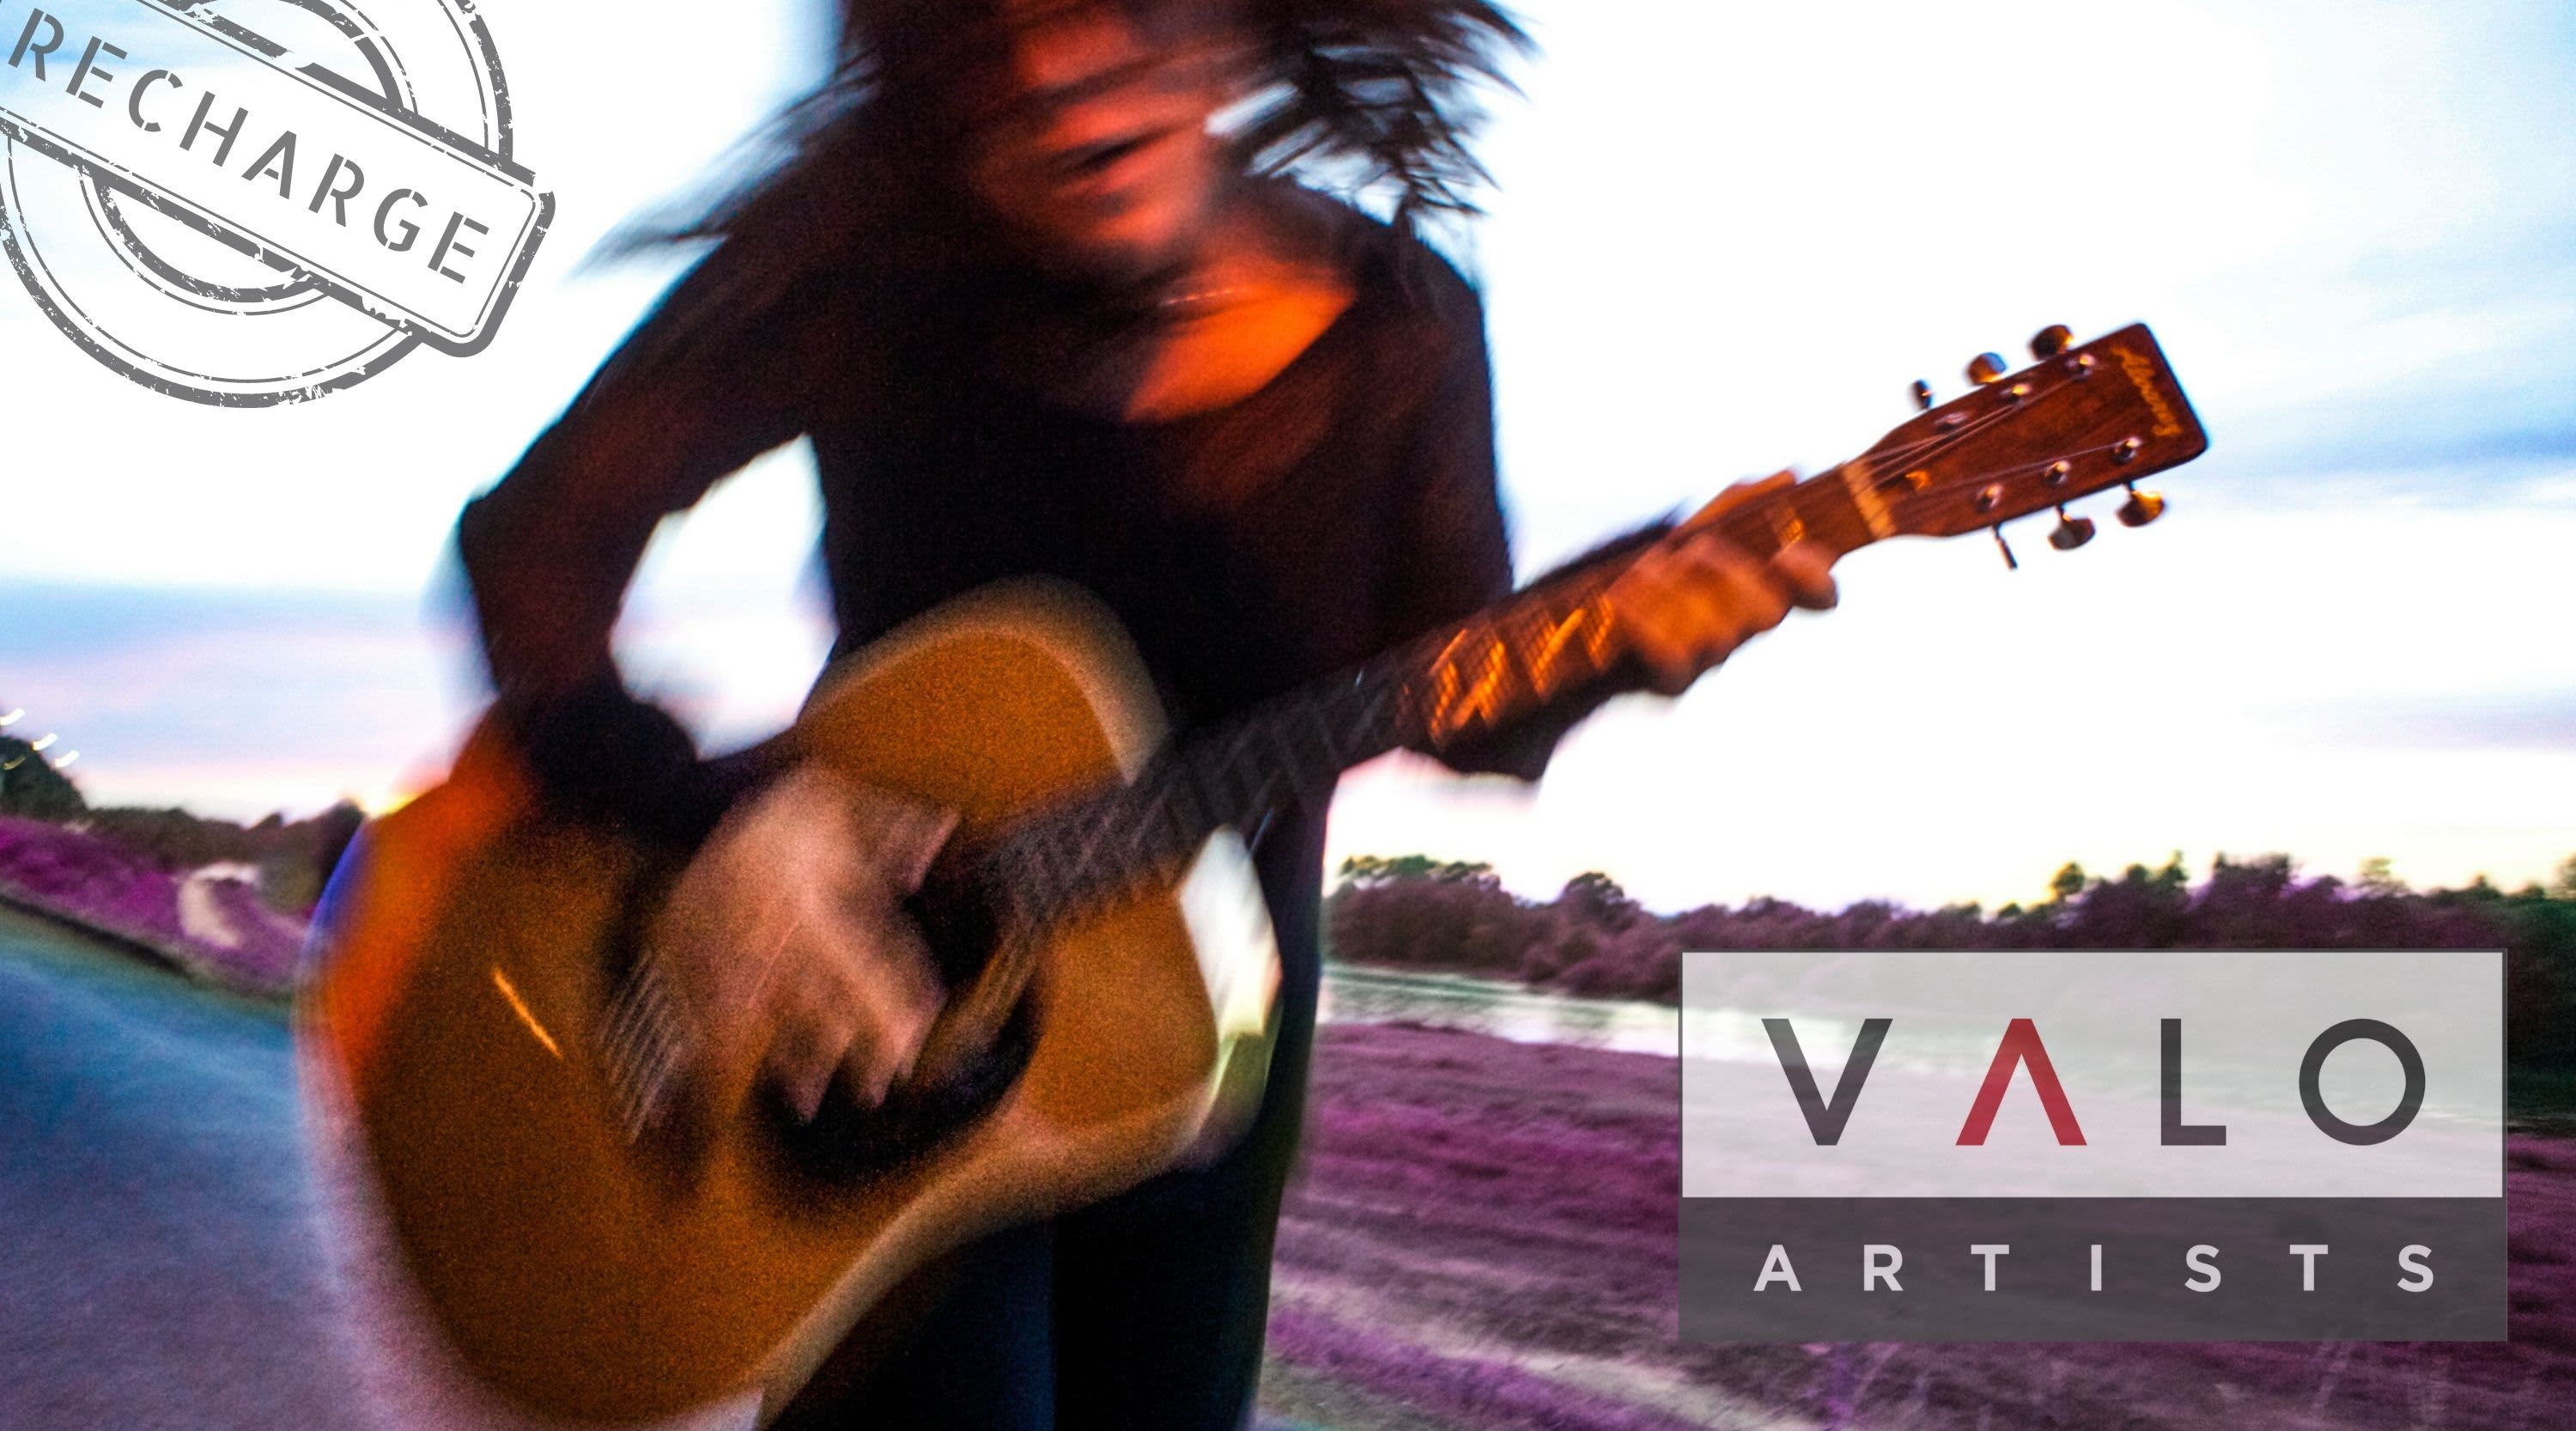 Valo Artists Recharge